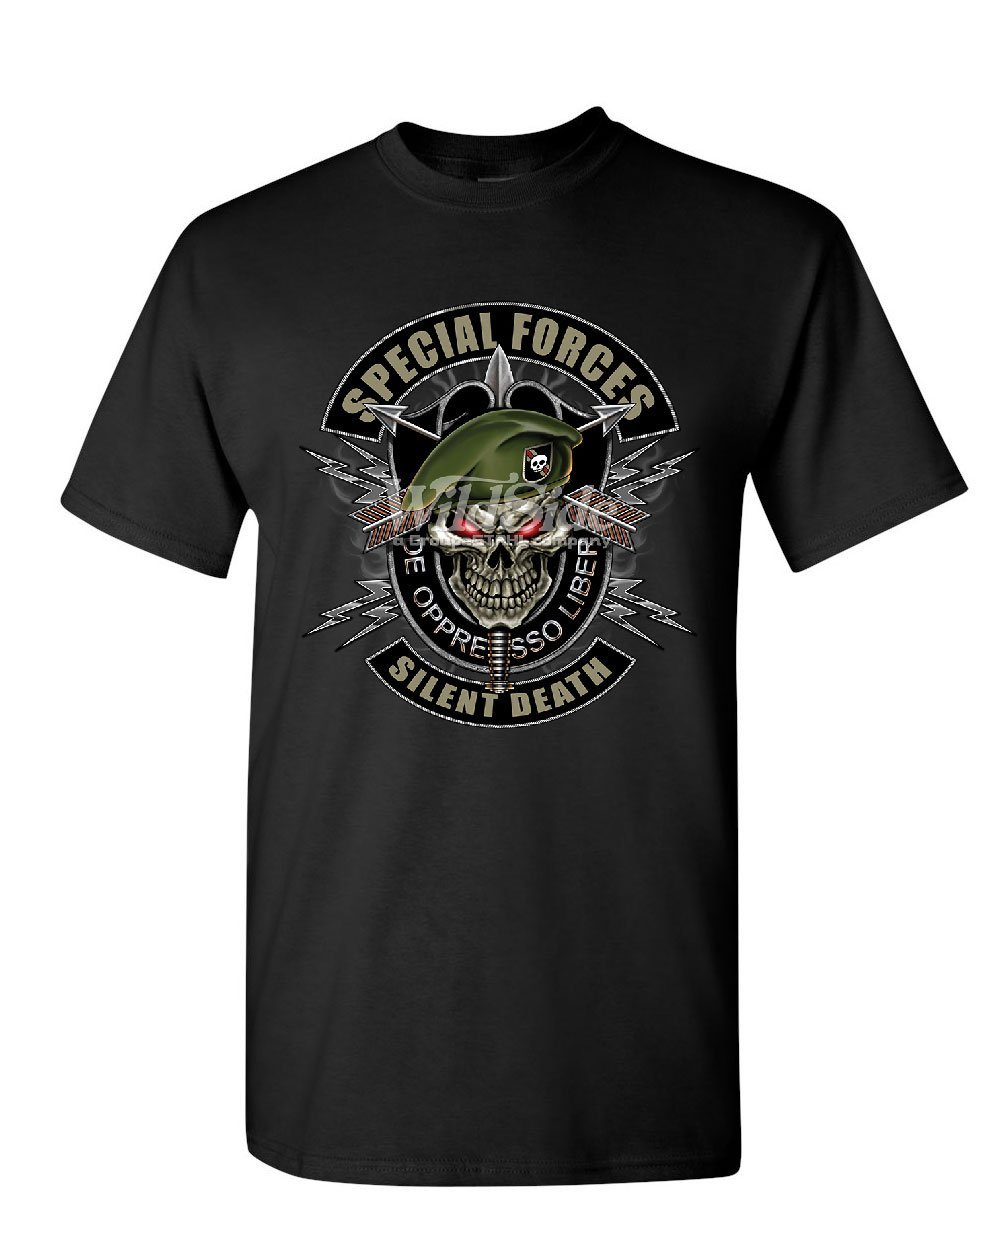 Special Forces Tshirt Army Silent Death Green Berets Skull S T